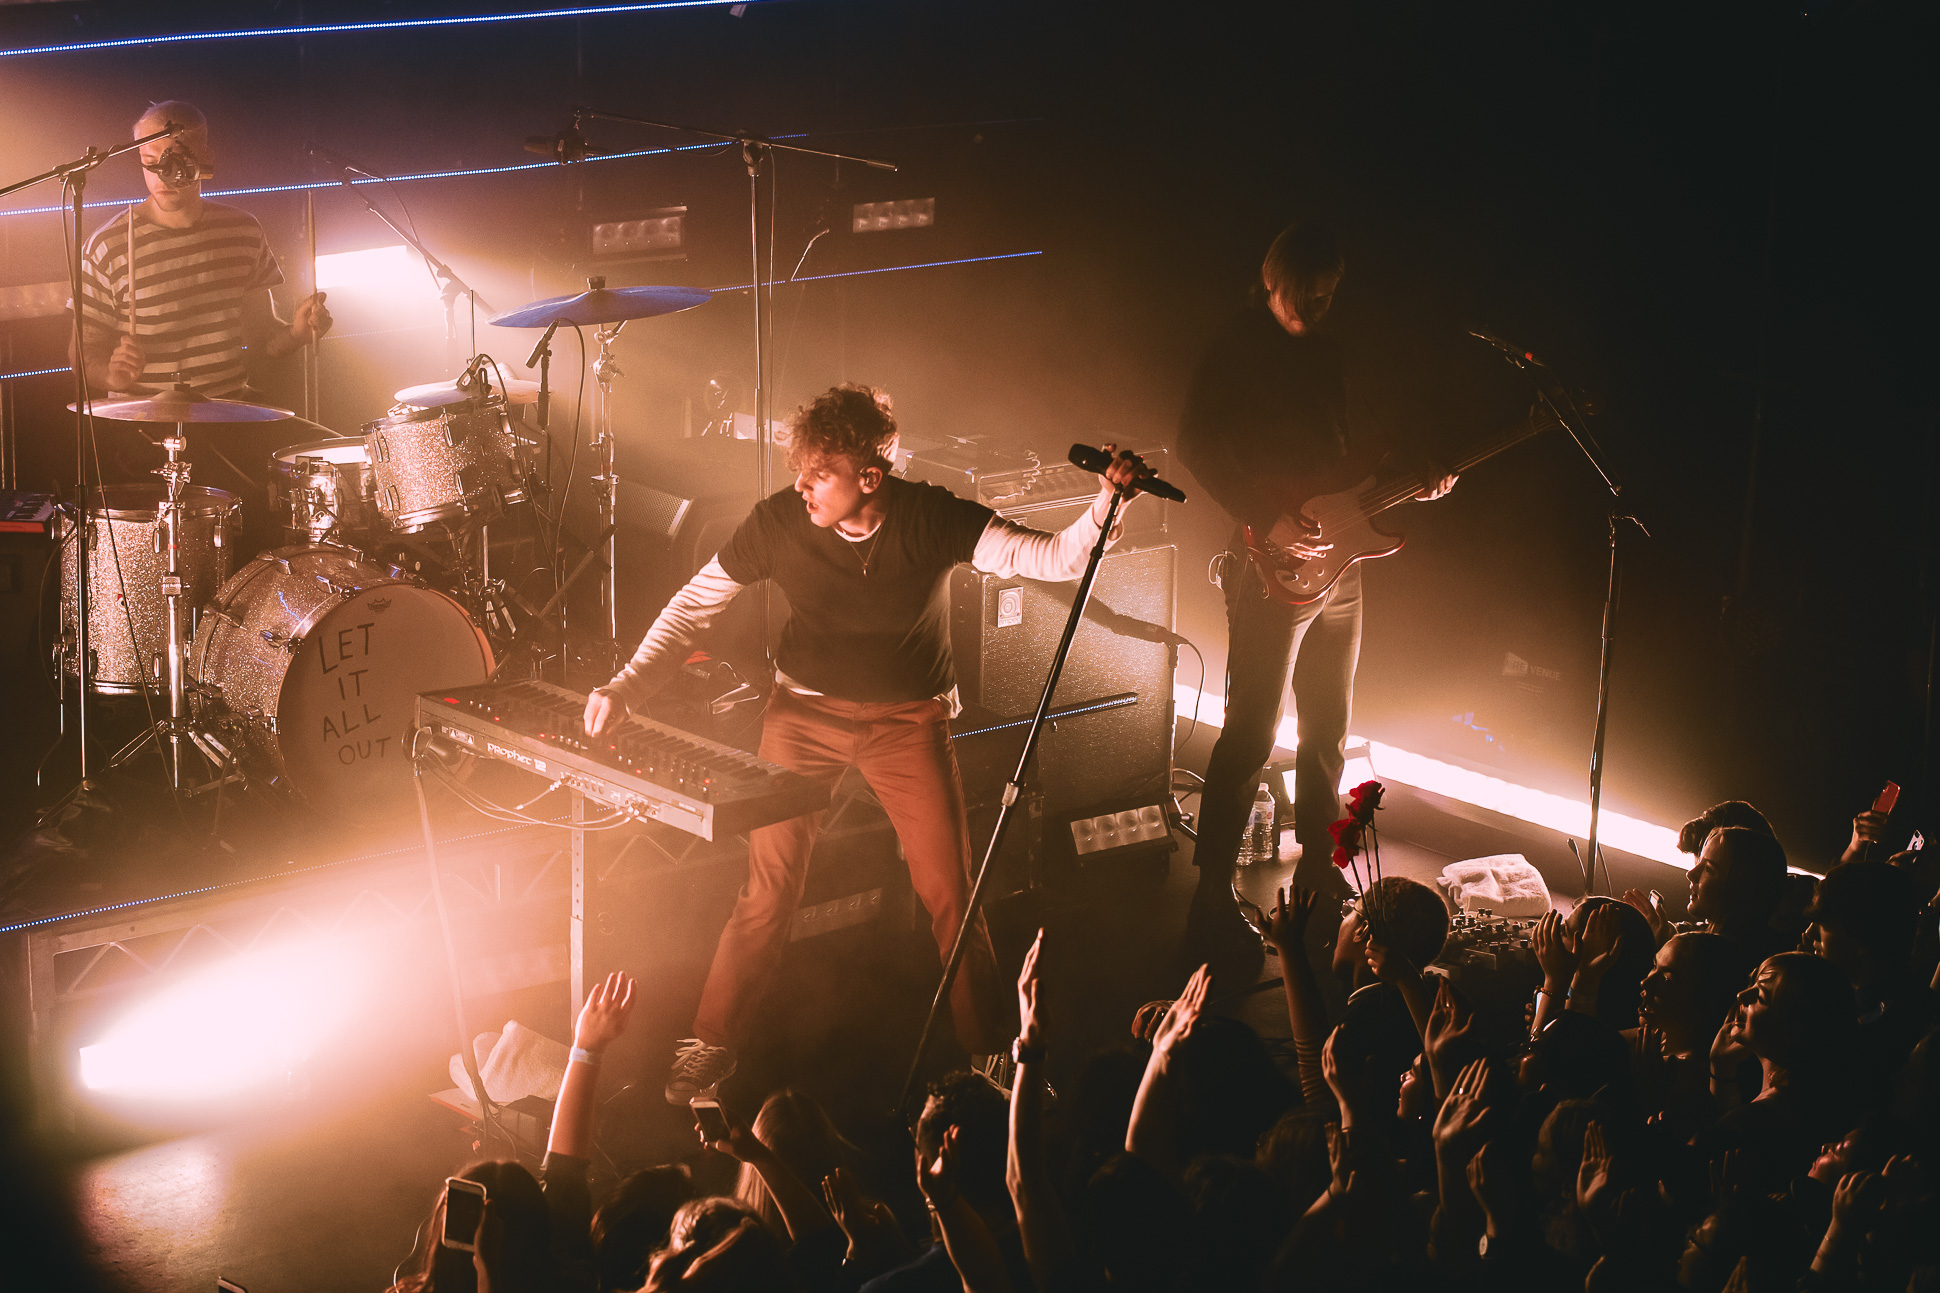 Live Review: COIN - Venue, Vancouver 24/02/2019 — When The Horn Blows